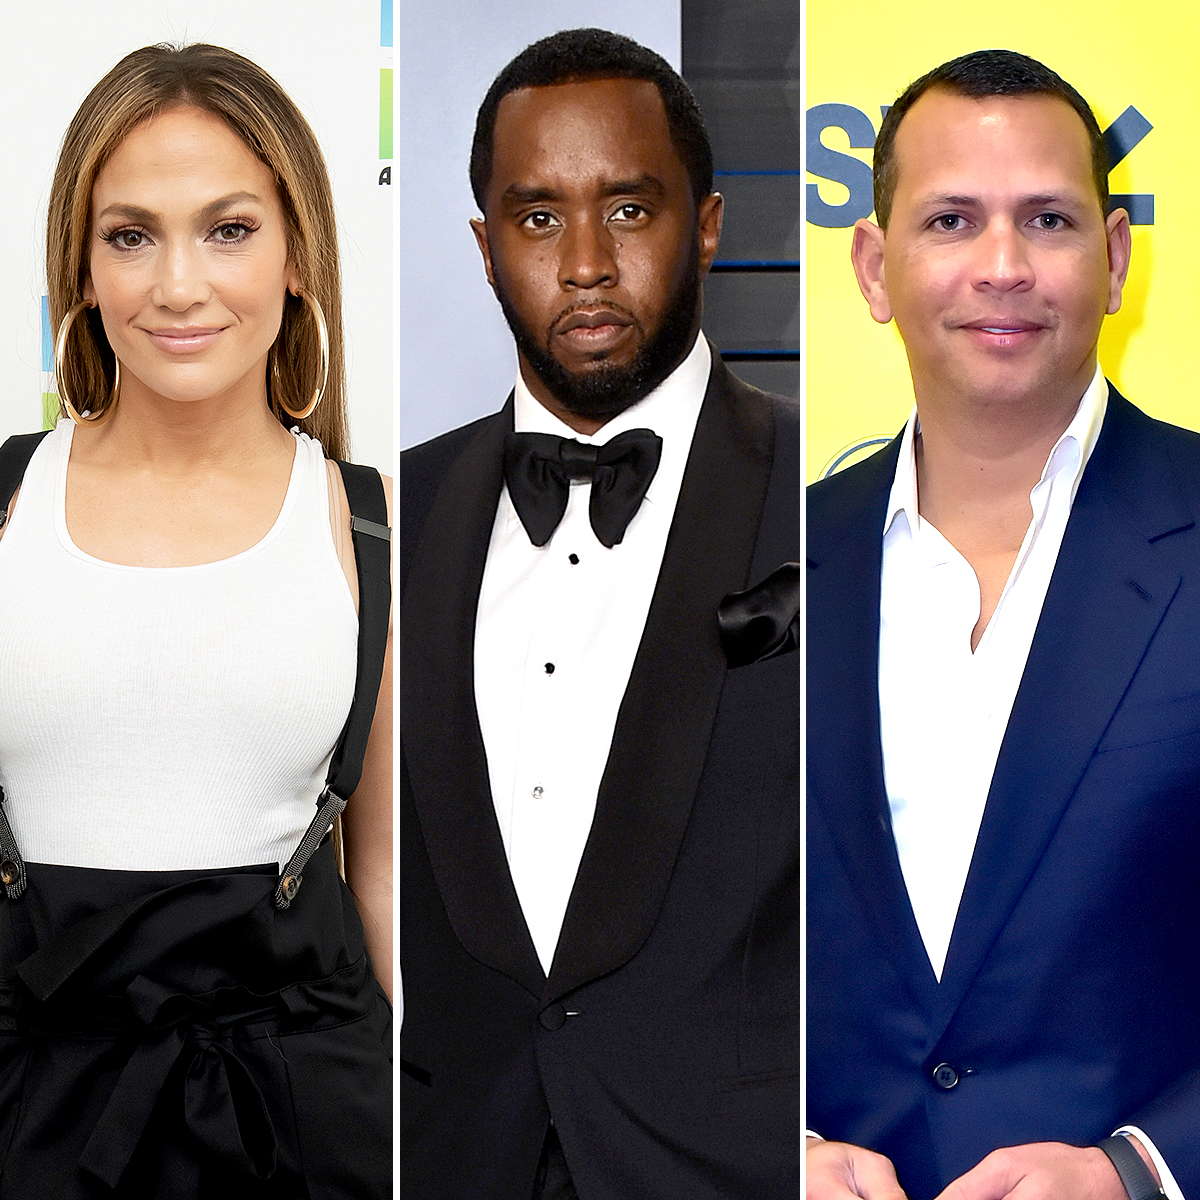 Sean-Diddy-Combs-Apologized-Alex-Rodriguez-Thirsty-Comment-Jennifer-Lopez